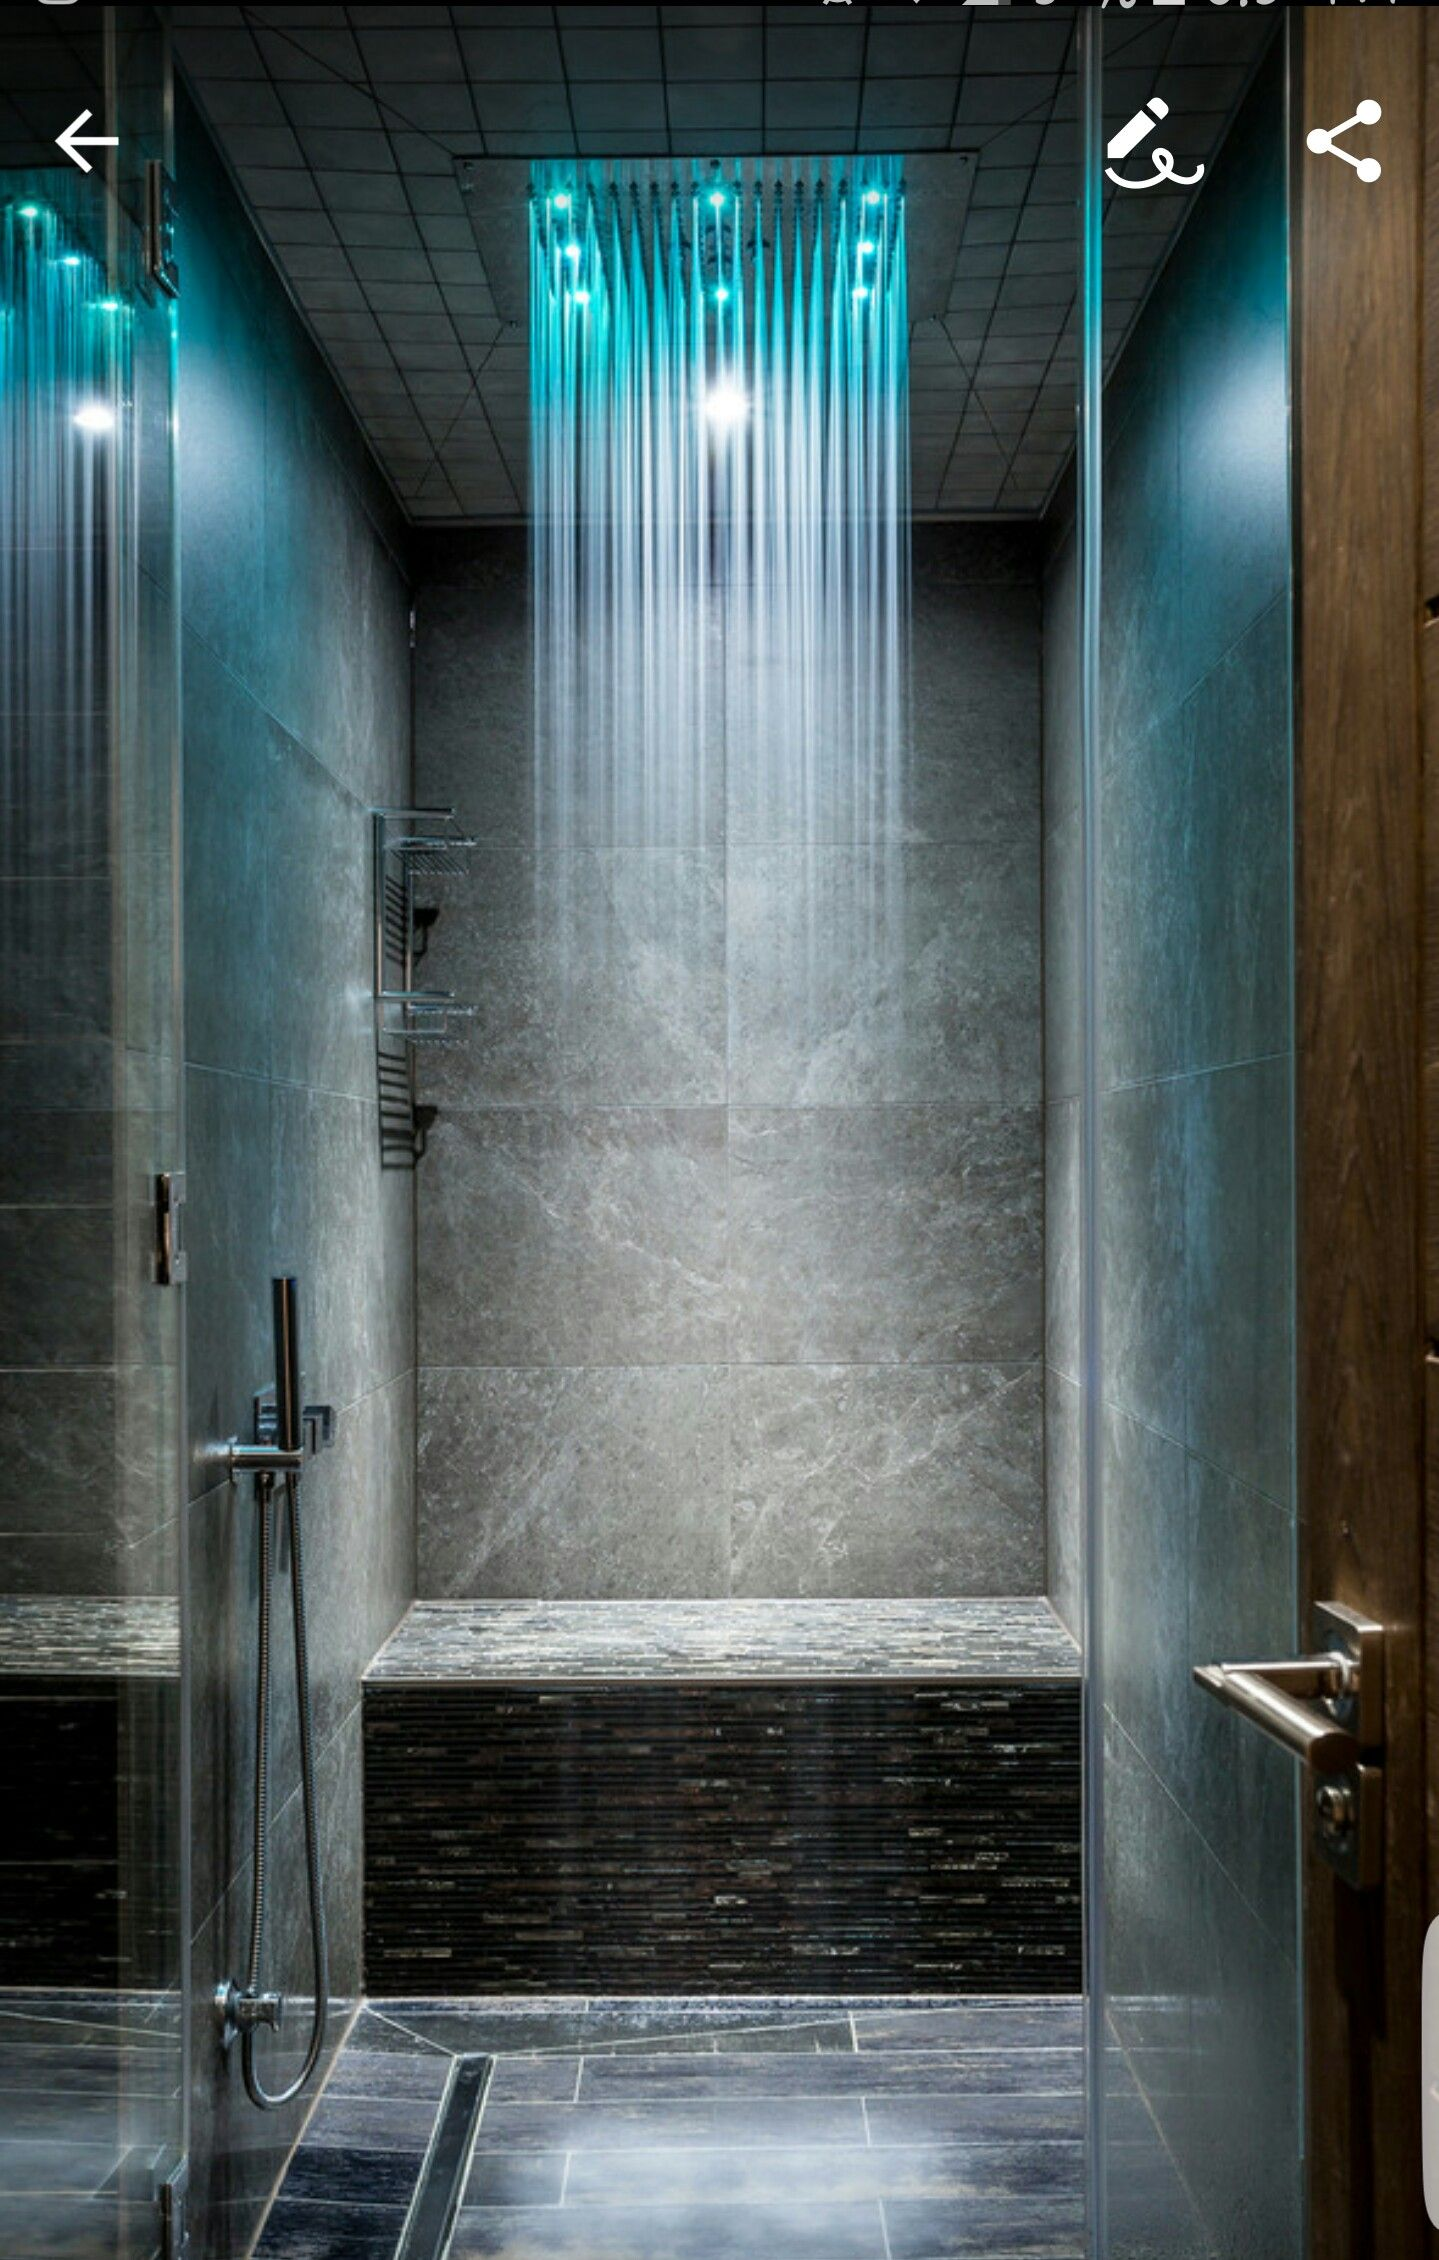 Perfect small but luxe shower with stone and a rainfall ... on cool industrial kitchen design, small bathroom shower tile design, double shower bathroom design, hgtv bathroom design, steel industrial kitchen interior design, open plan bathroom design, industrial bathroom design, japanese soaking tub bathroom design, bathroom steam shower room design,